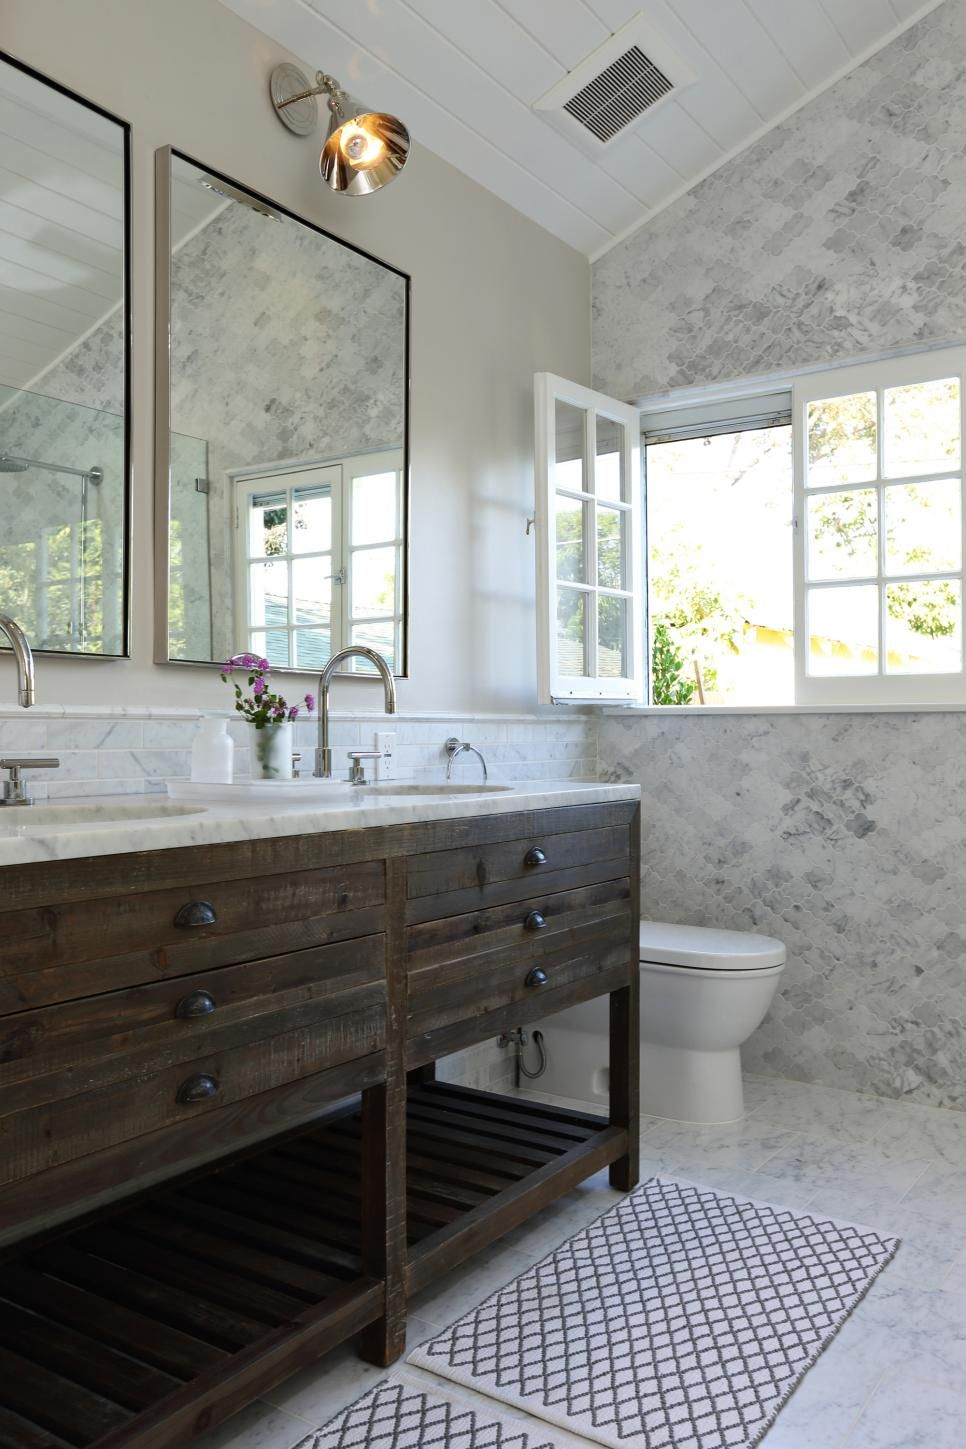 the rustic wood vanity is a striking contrast to the extravagant carrara marble floor and wall